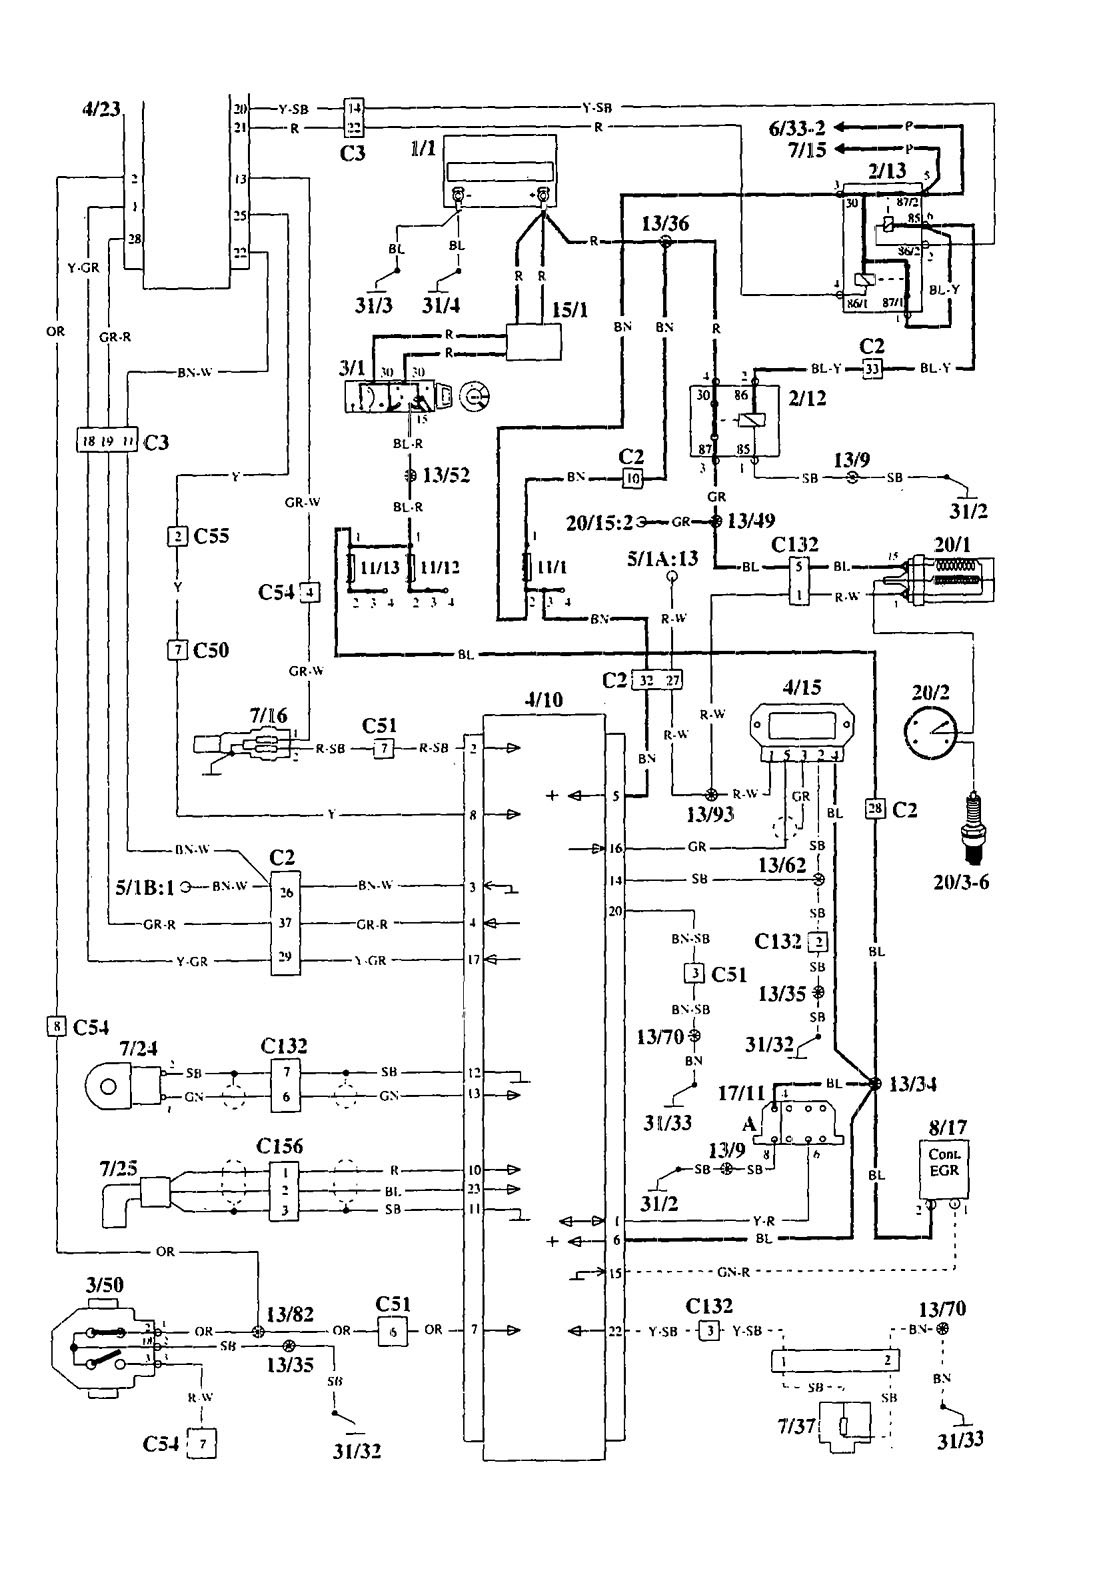 hight resolution of 1995 volvo 940 wiring diagram wiring diagram schematics 2004 volvo s40 wiring diagram 1995 volvo 940 ac wiring diagram